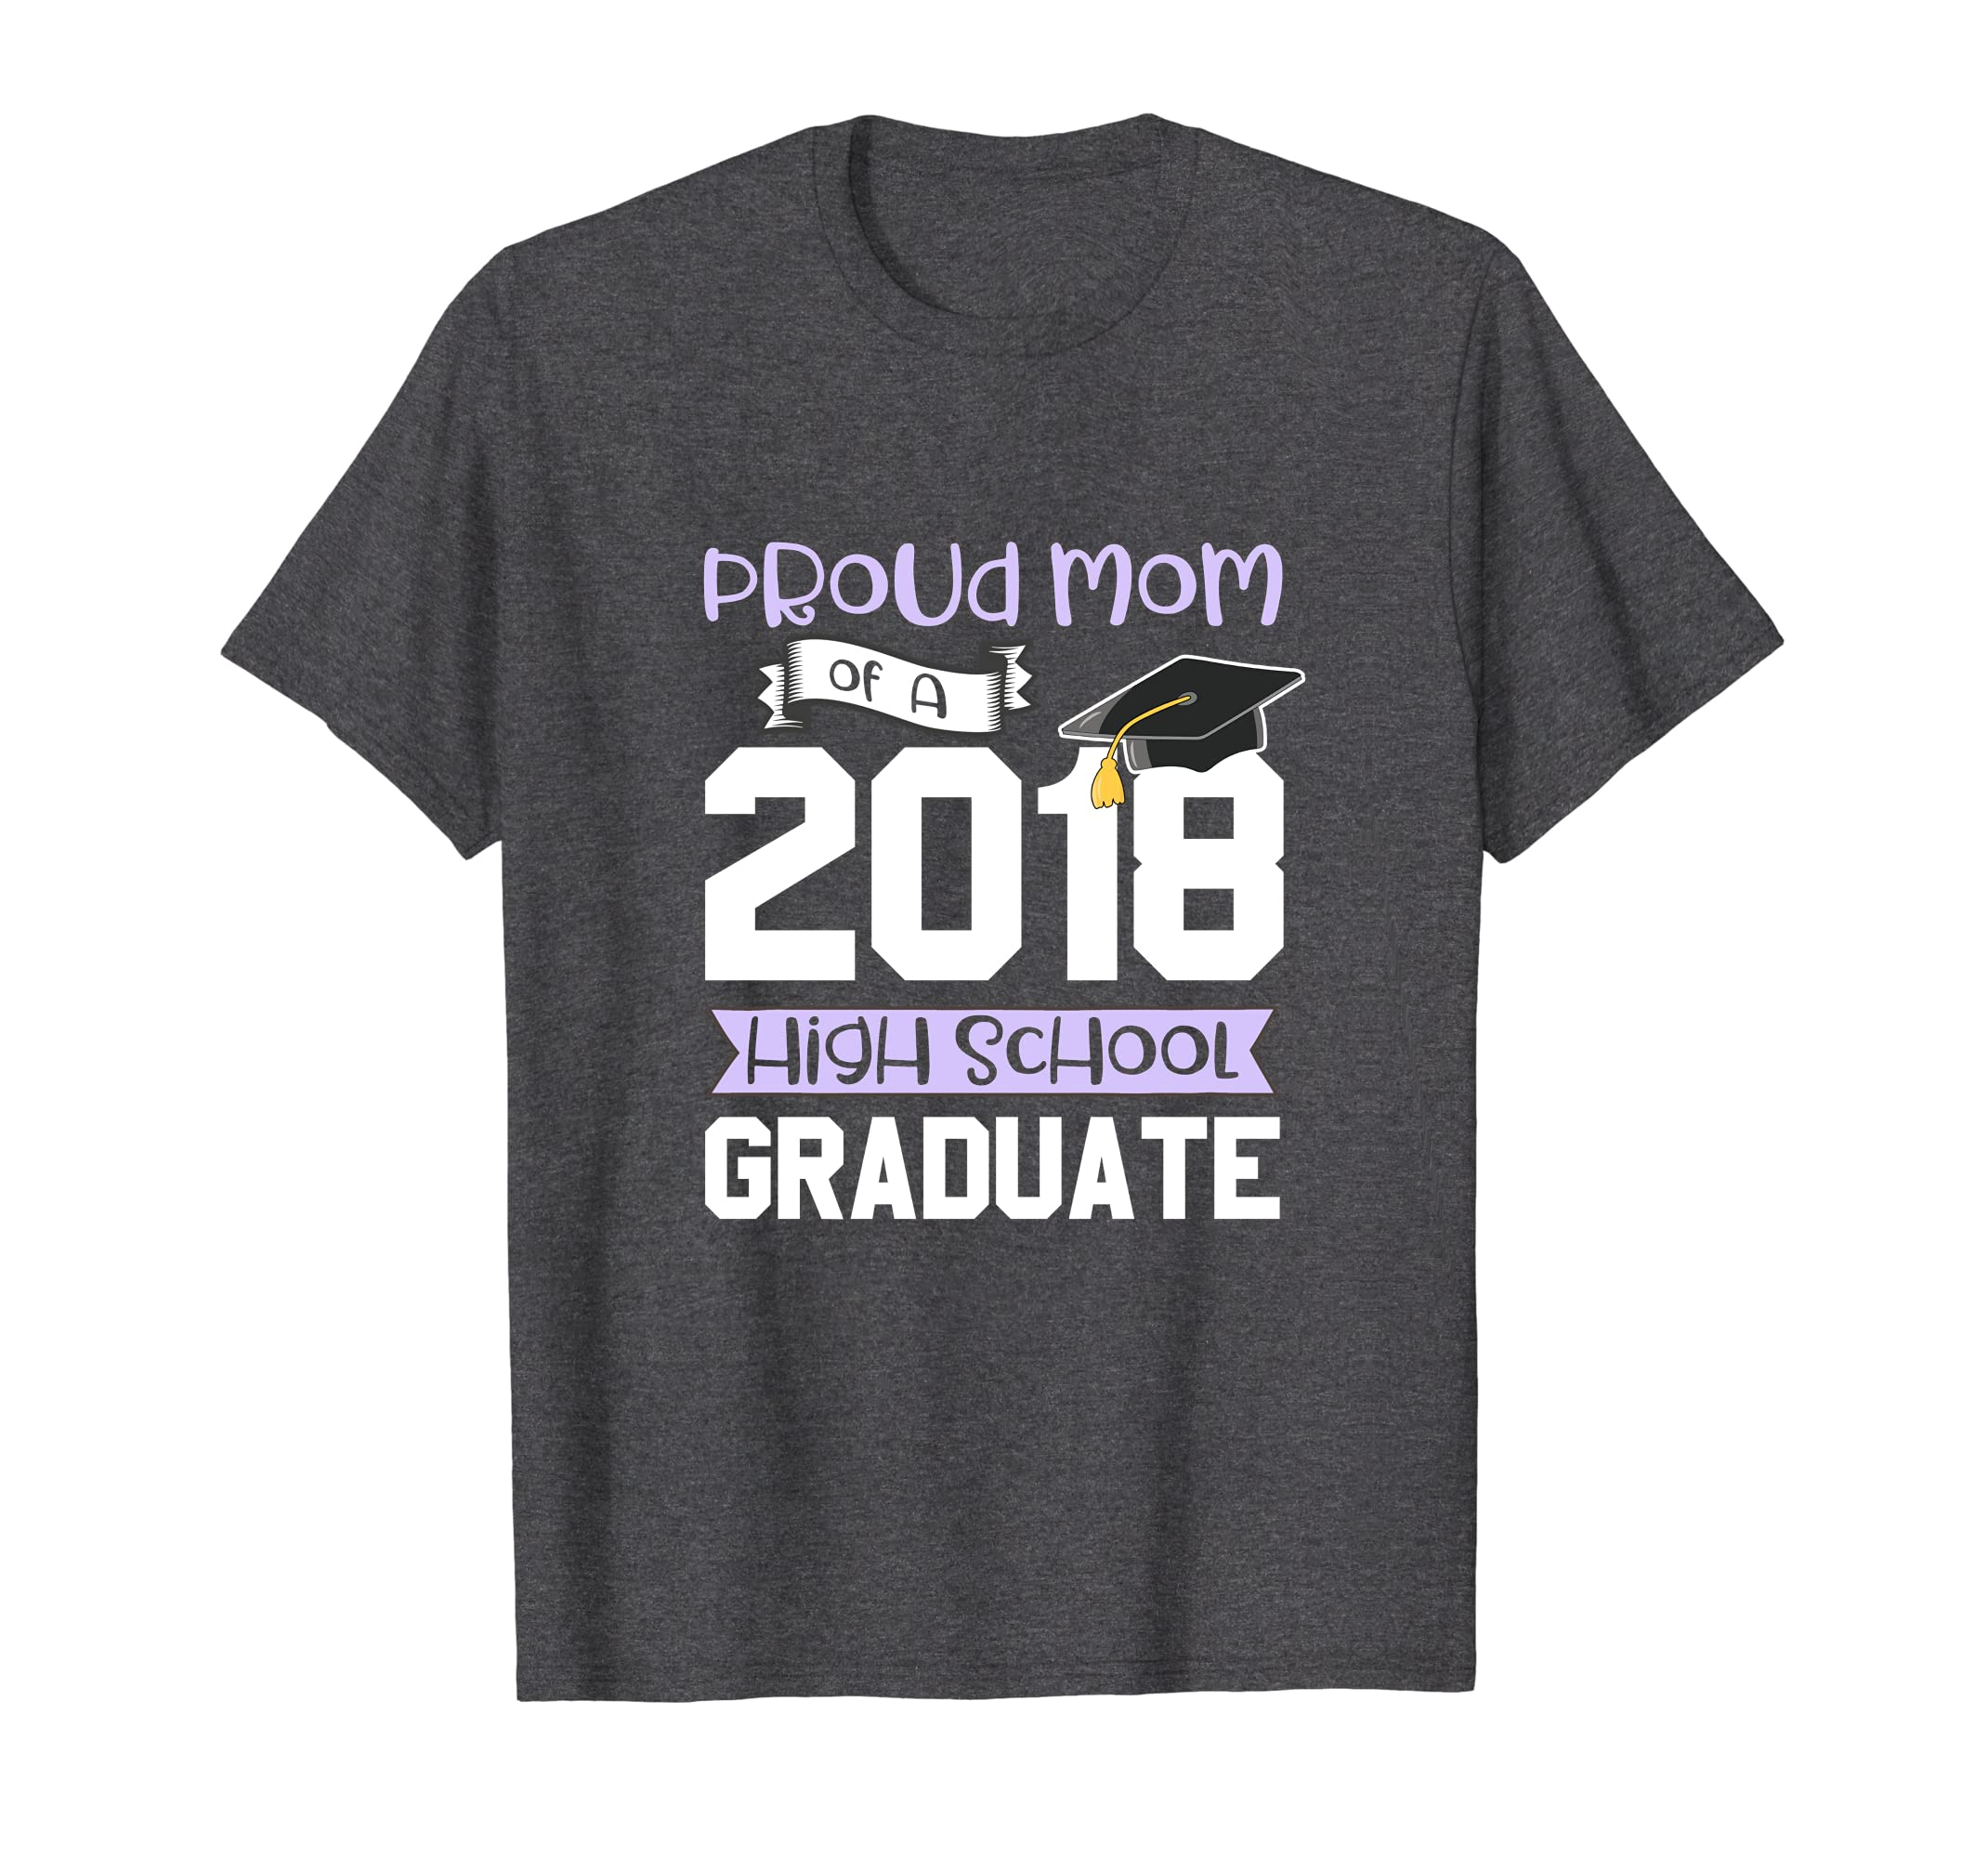 97a7050c35 Amazon.com: Graduation Shirts For Family 2018 Proud Mom High School Tee:  Clothing